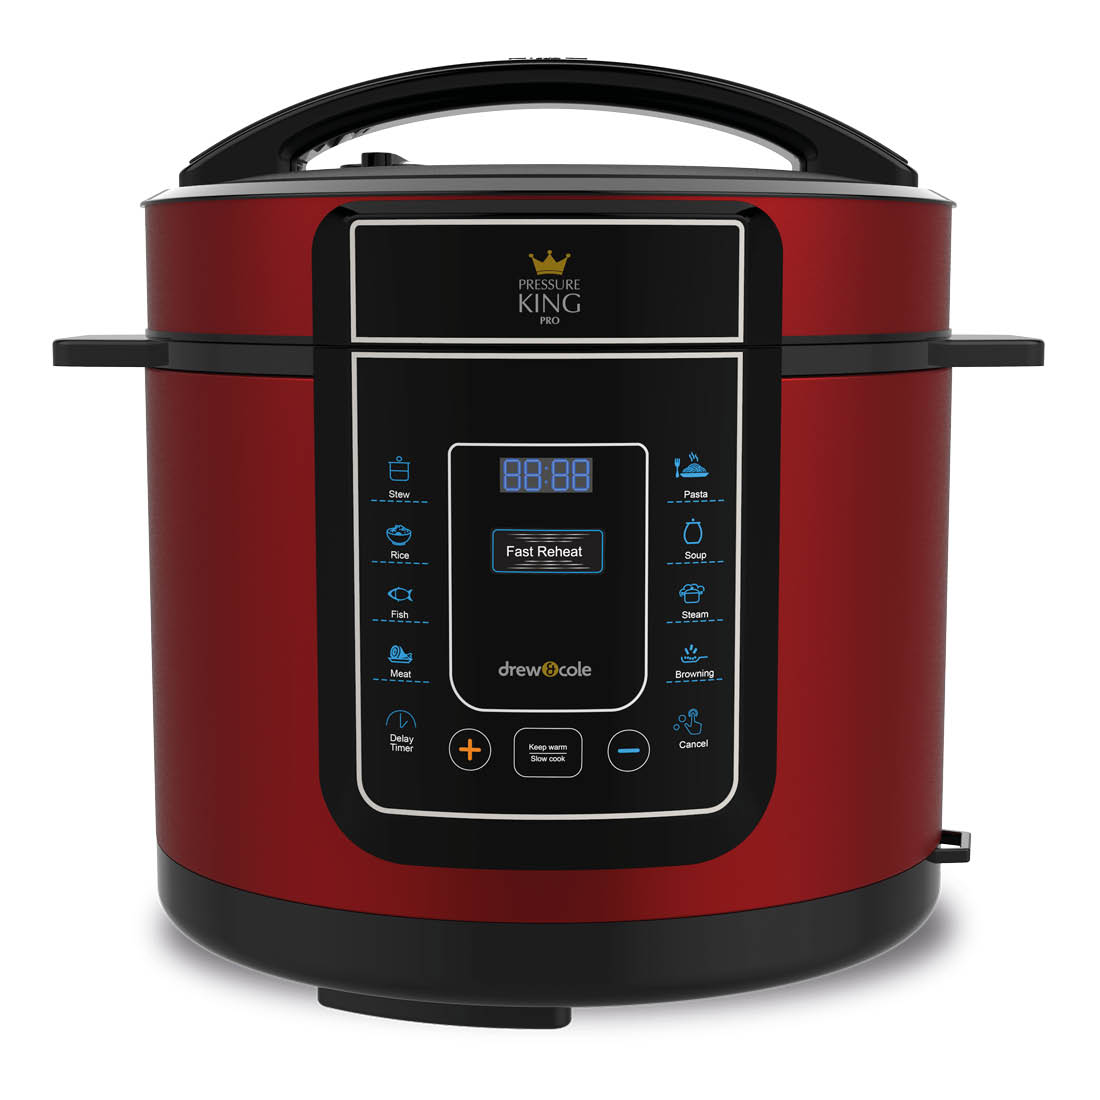 An image of Pressure King Pro 12-in-1 5L Digital Pressure Cooker – Red